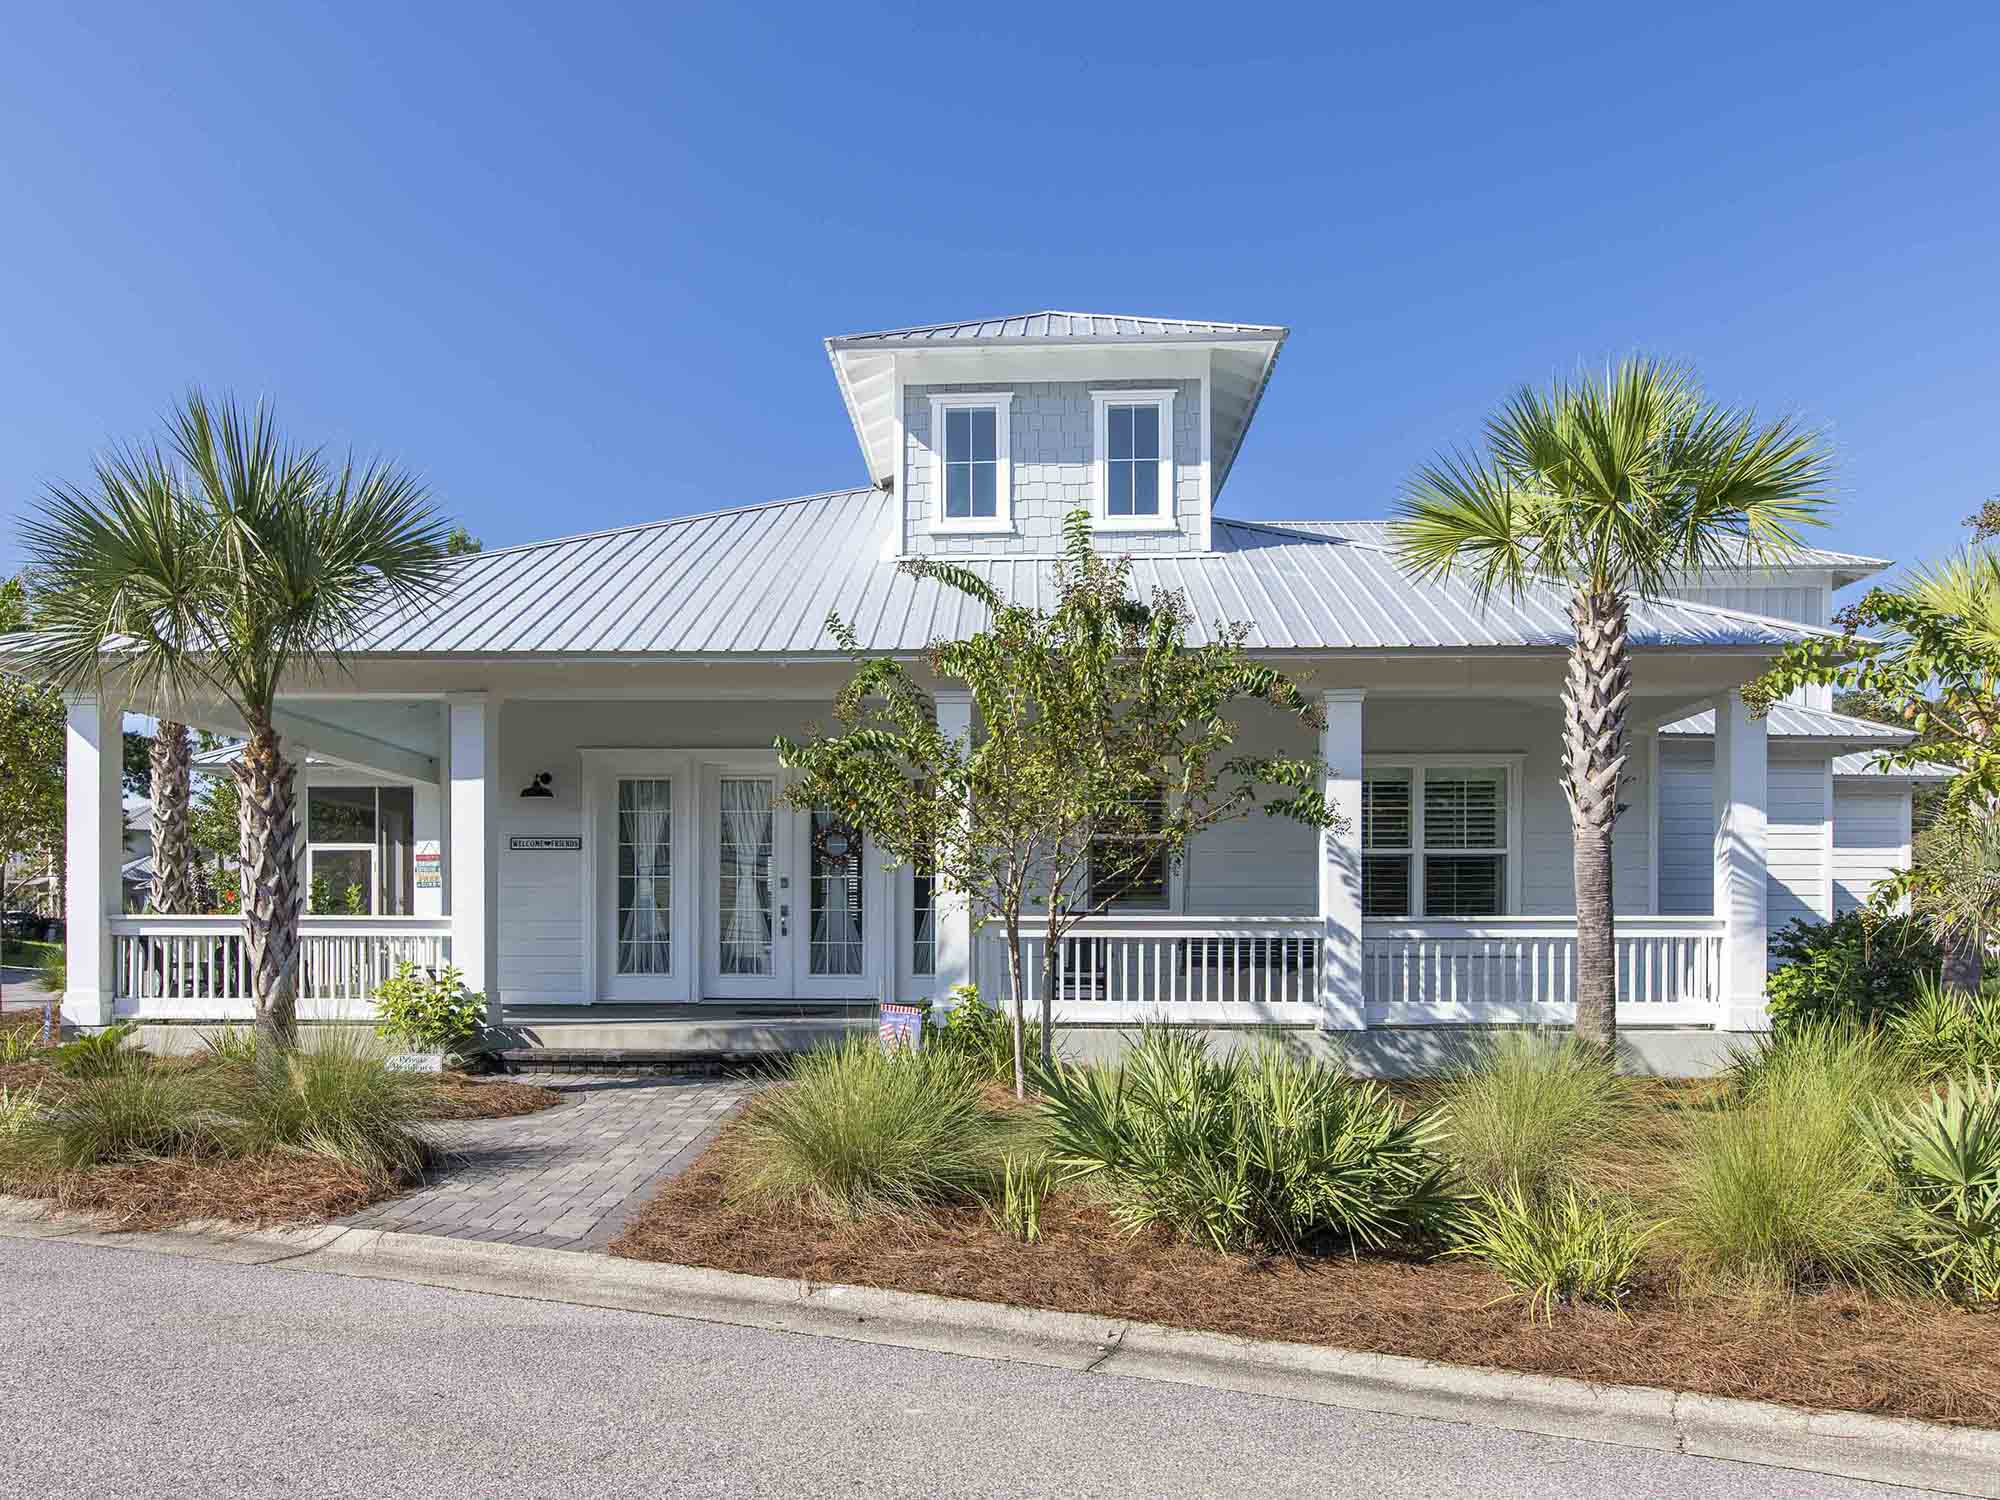 1 Conched Out Villa Destin Florida Vacation Home By